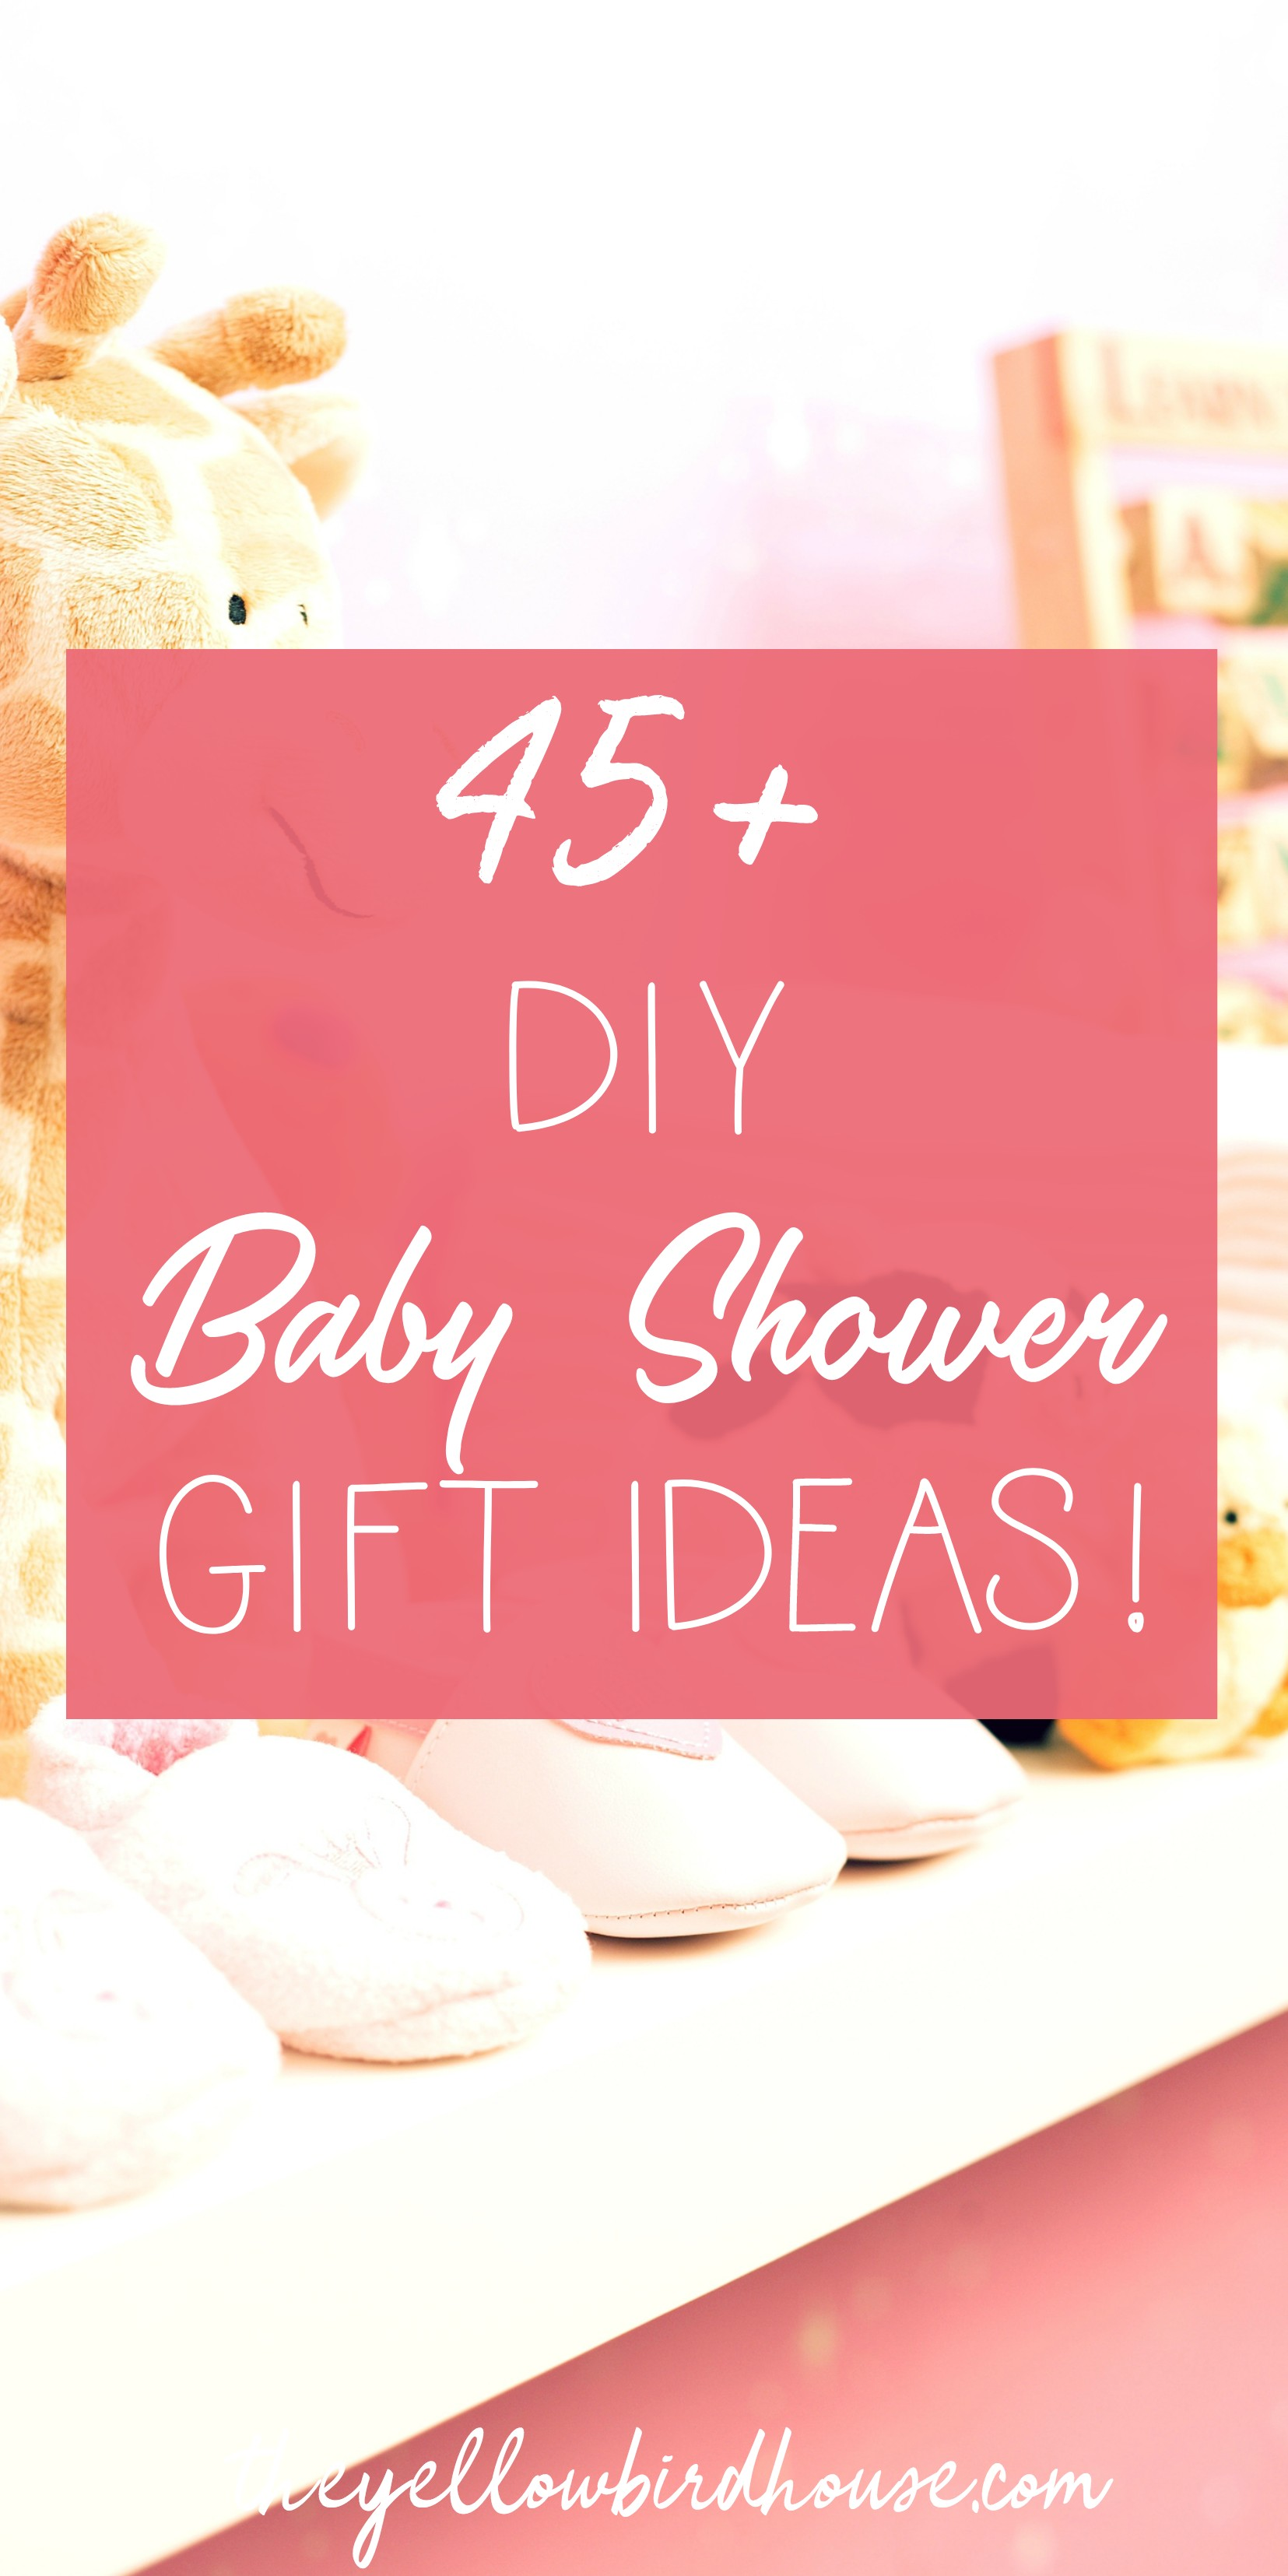 45+ DIY Baby Shower Gift Ideas for new moms. DIY baby leggings, baby booties, bandana bibs and much more. This great round-up post is full of free patterns and tutorials for adorable DIY baby gifts that mom and babe are sure to treasure for years to come!